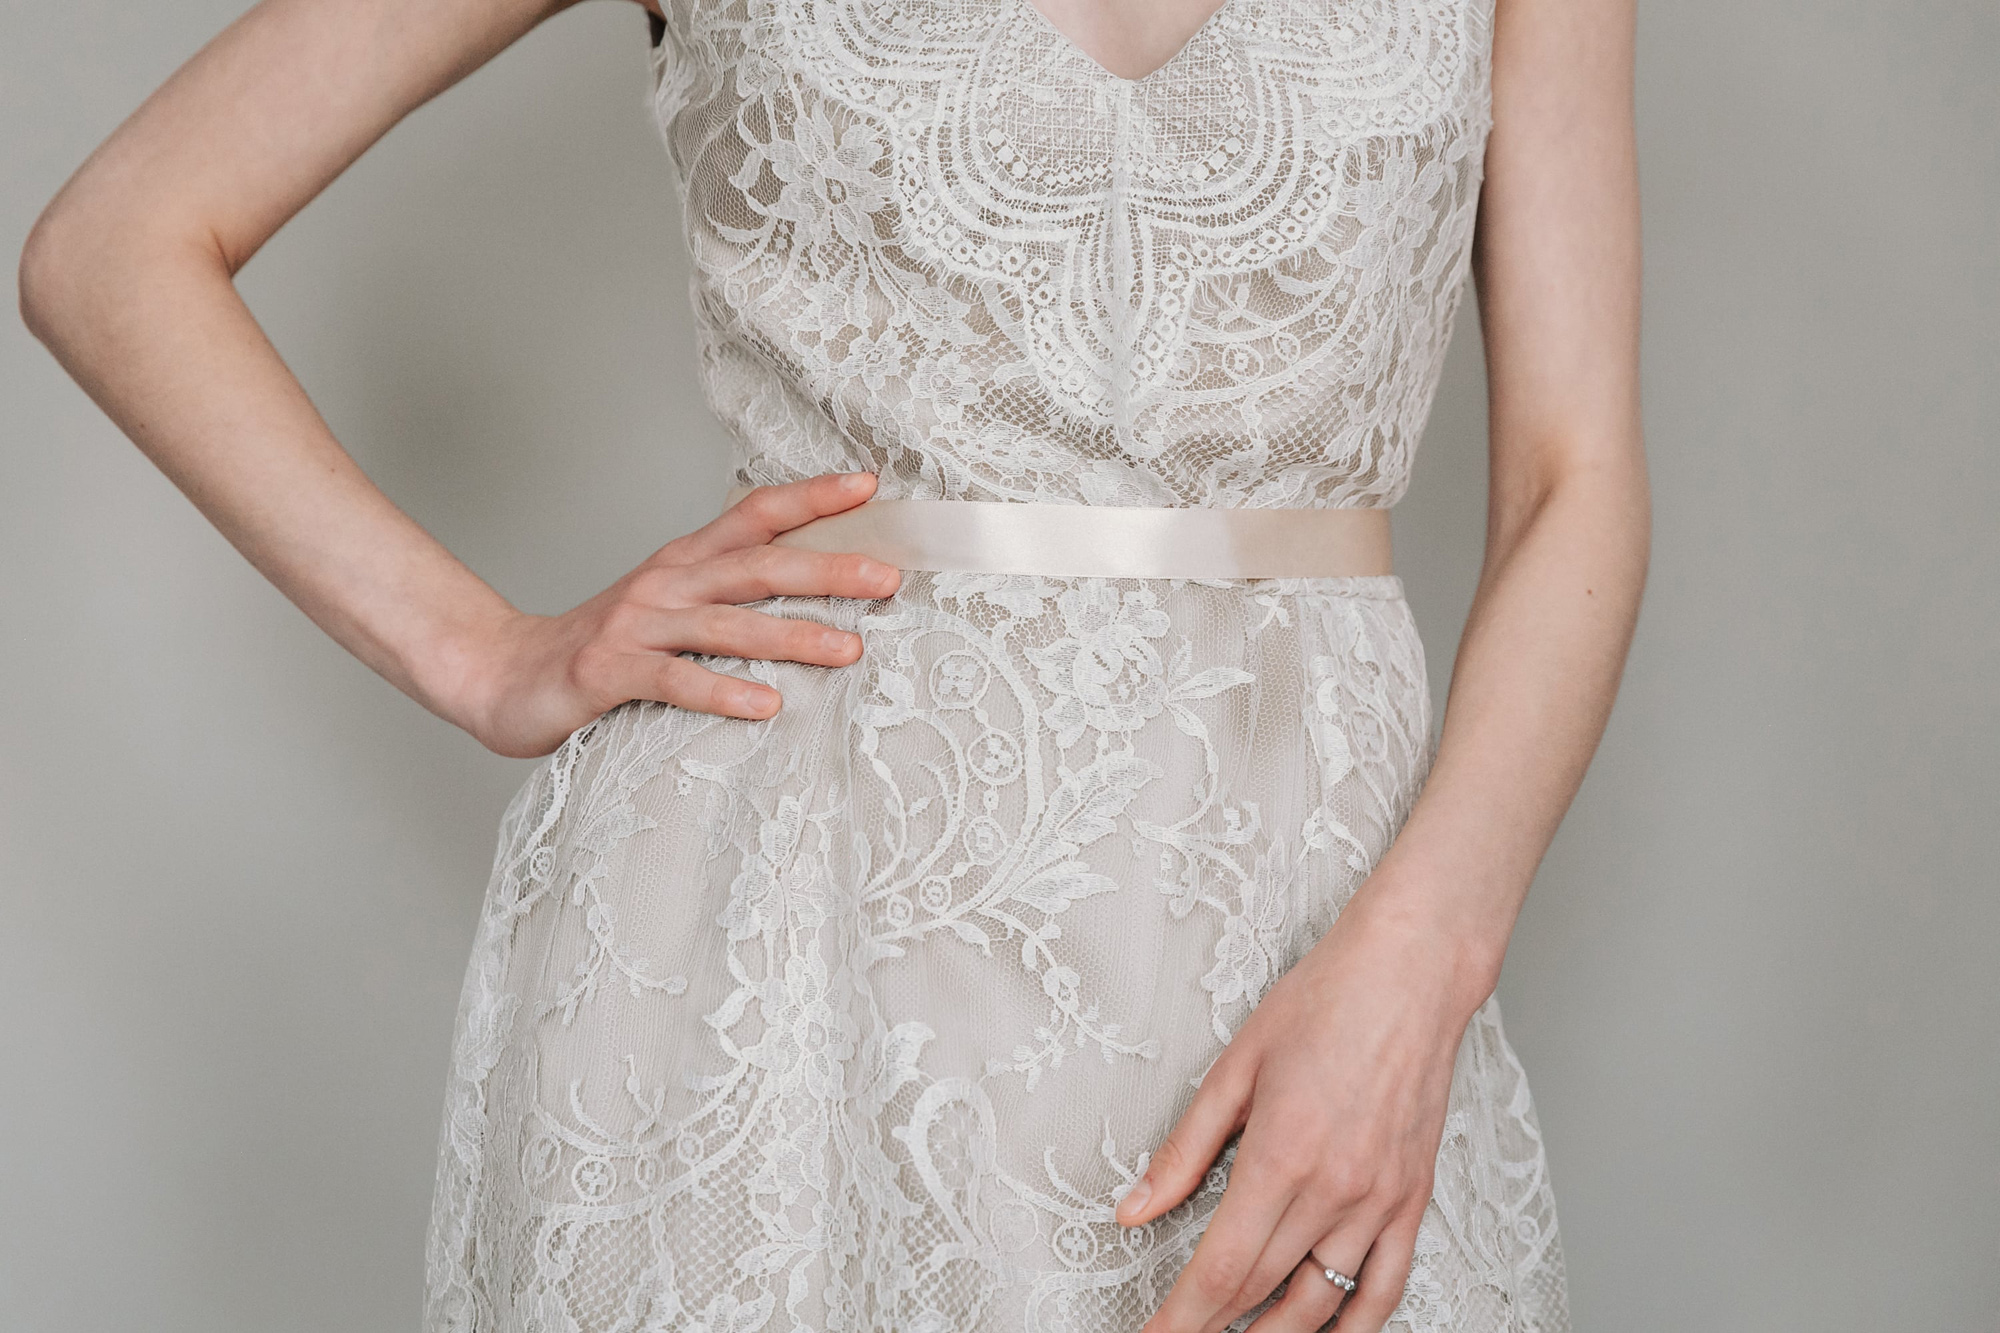 Kate-Beaumont-Sheffield-Wild-Lupin-Bohemian-Lace-Wedding-Gown-Tiered-Skirt-3.jpg